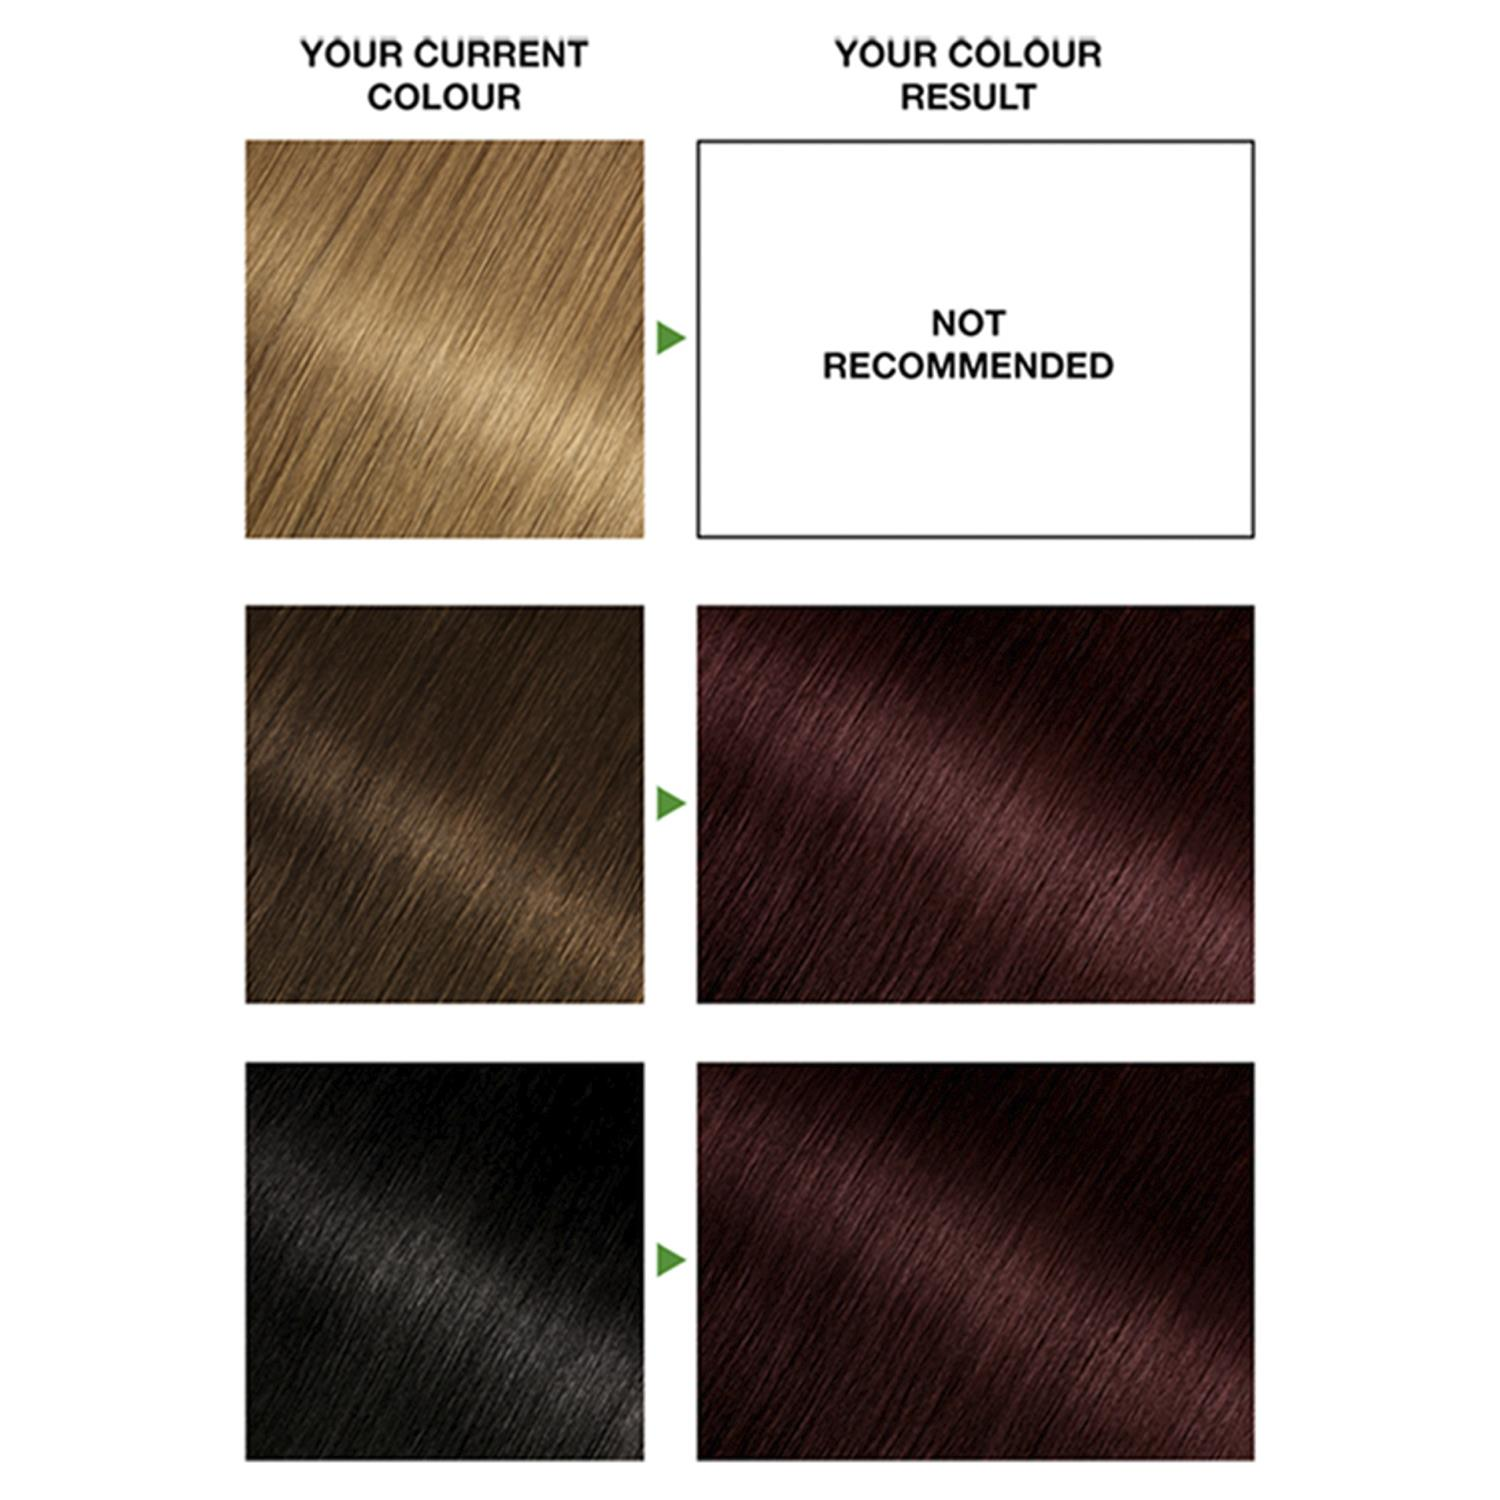 thumbnail 43 - 3 Pack Garnier Nutrisse Permanent Hair Dye With Different Shades